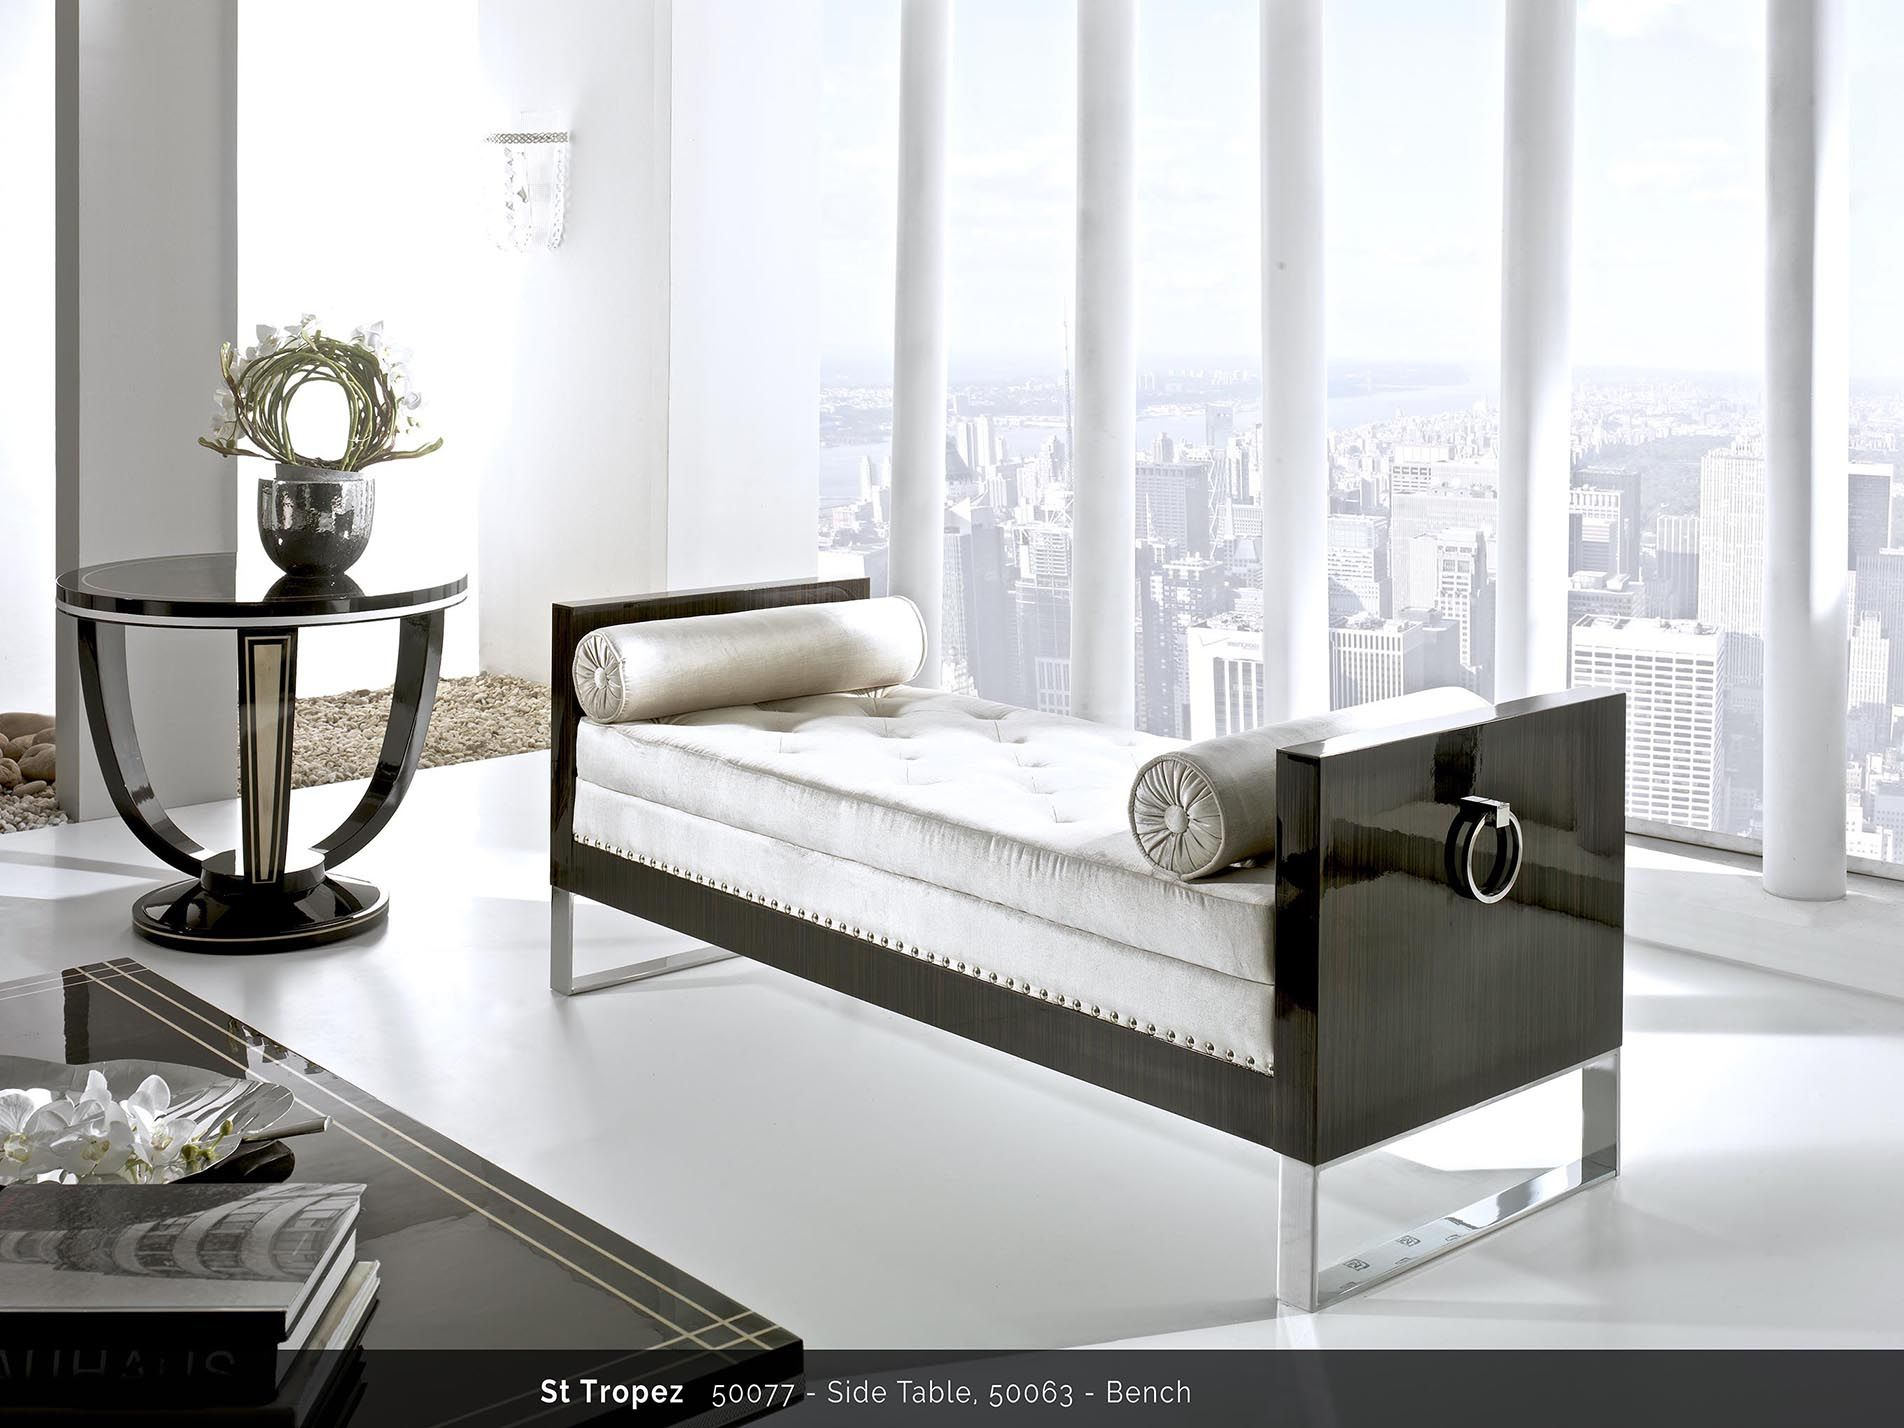 64 best Mariner furniture images on Pinterest   Products, Interior ...